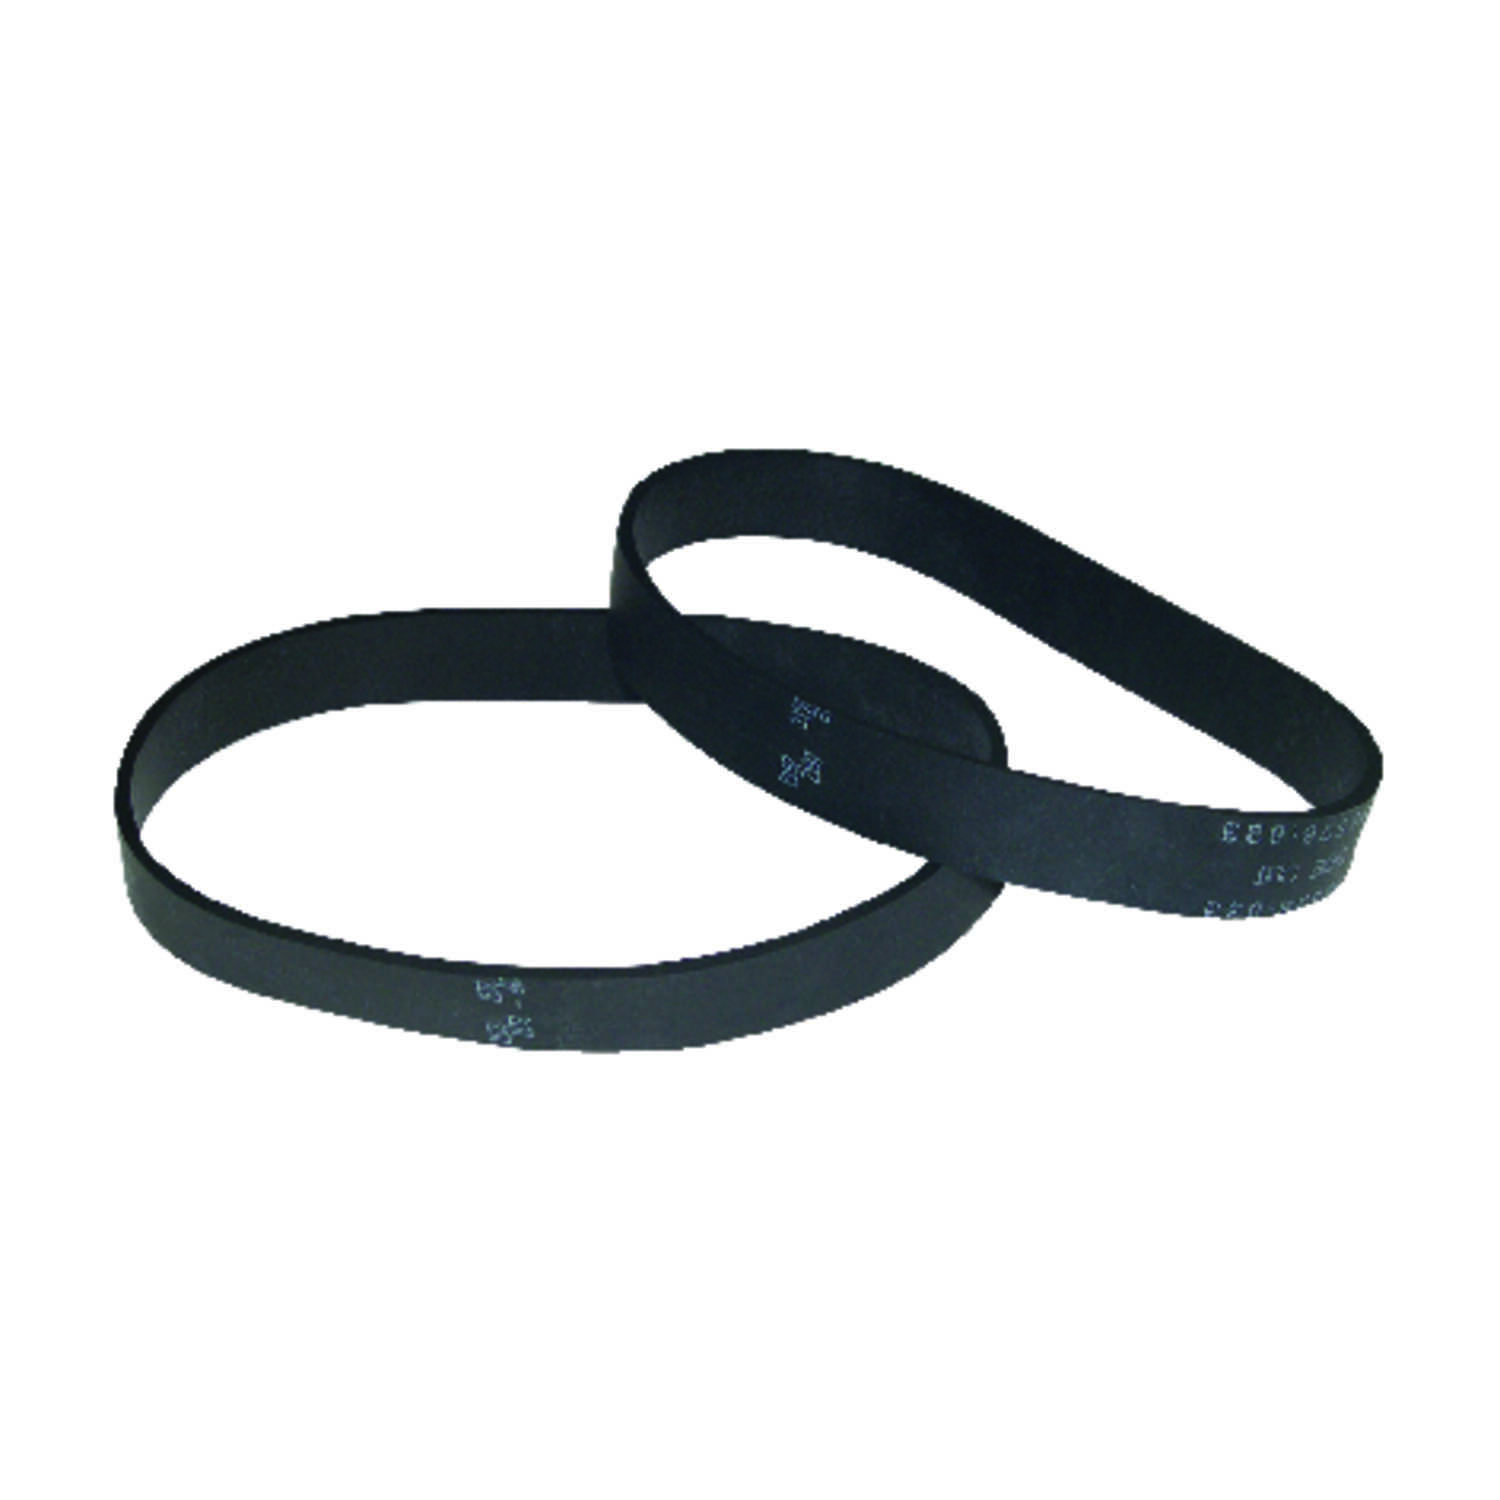 Hoover Windtunnel Vacuum Belt For Hoover Polybagged 2 / Pack Upright